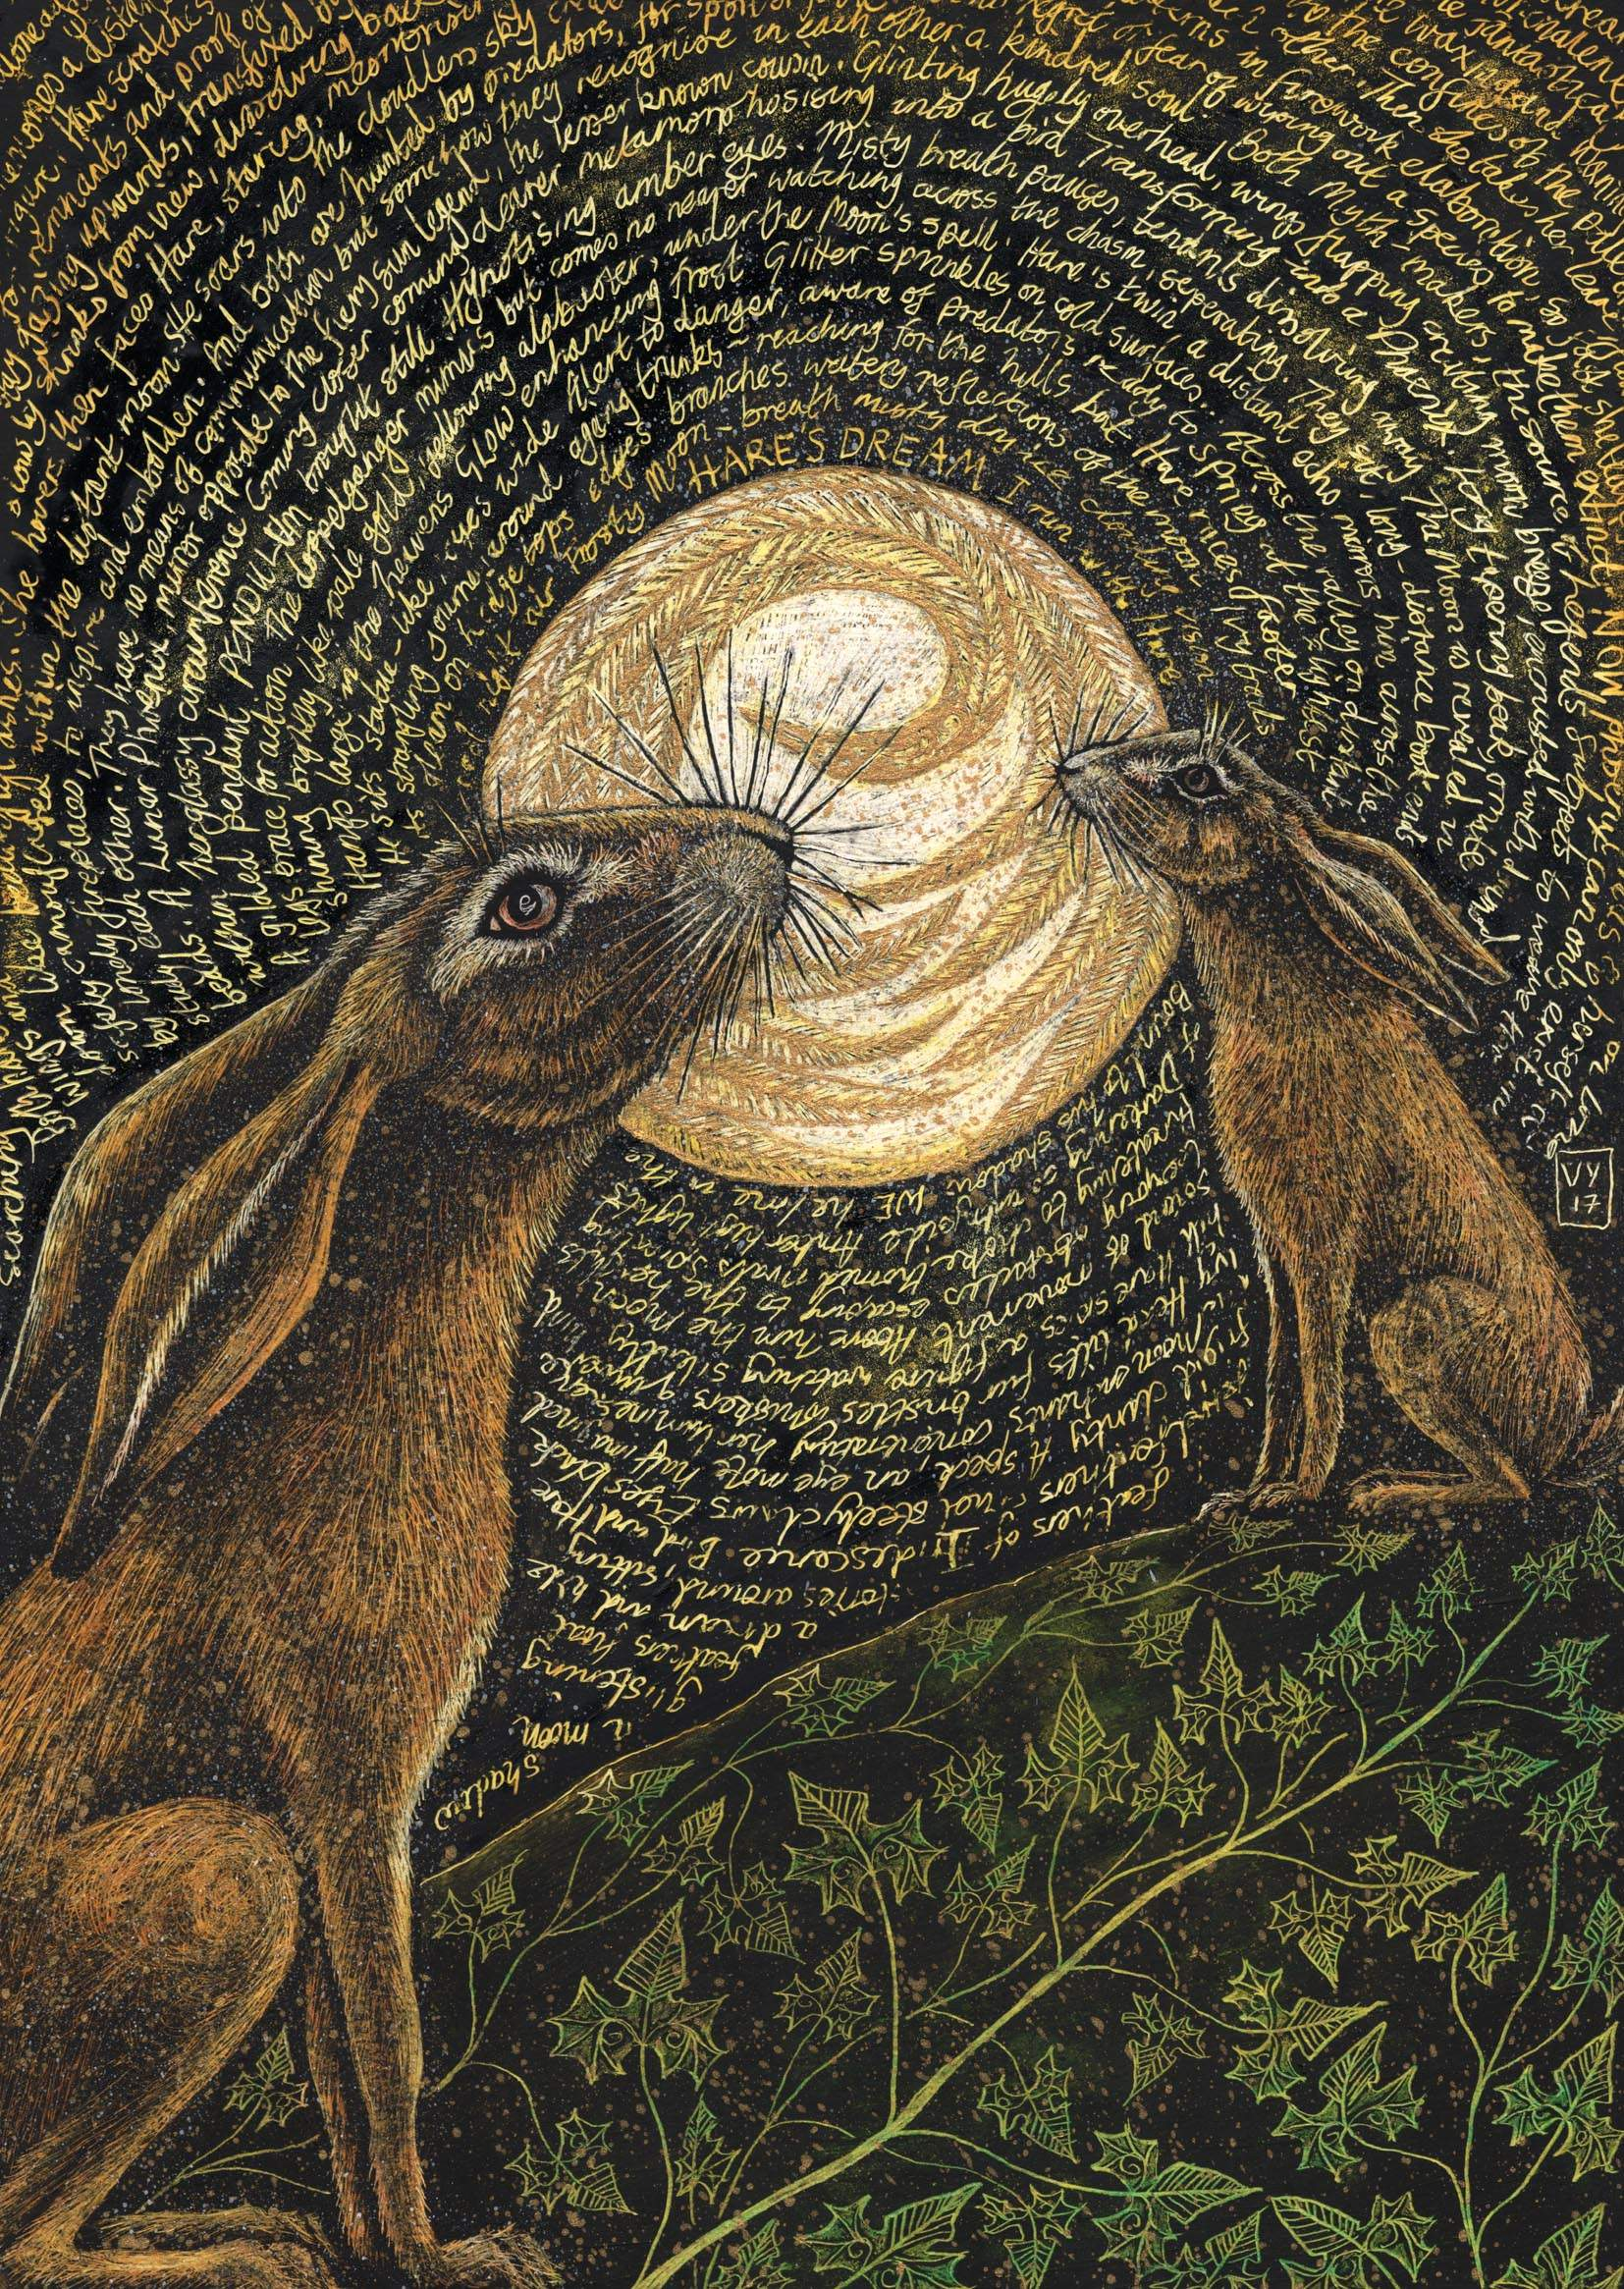 'Hare's Dream' card